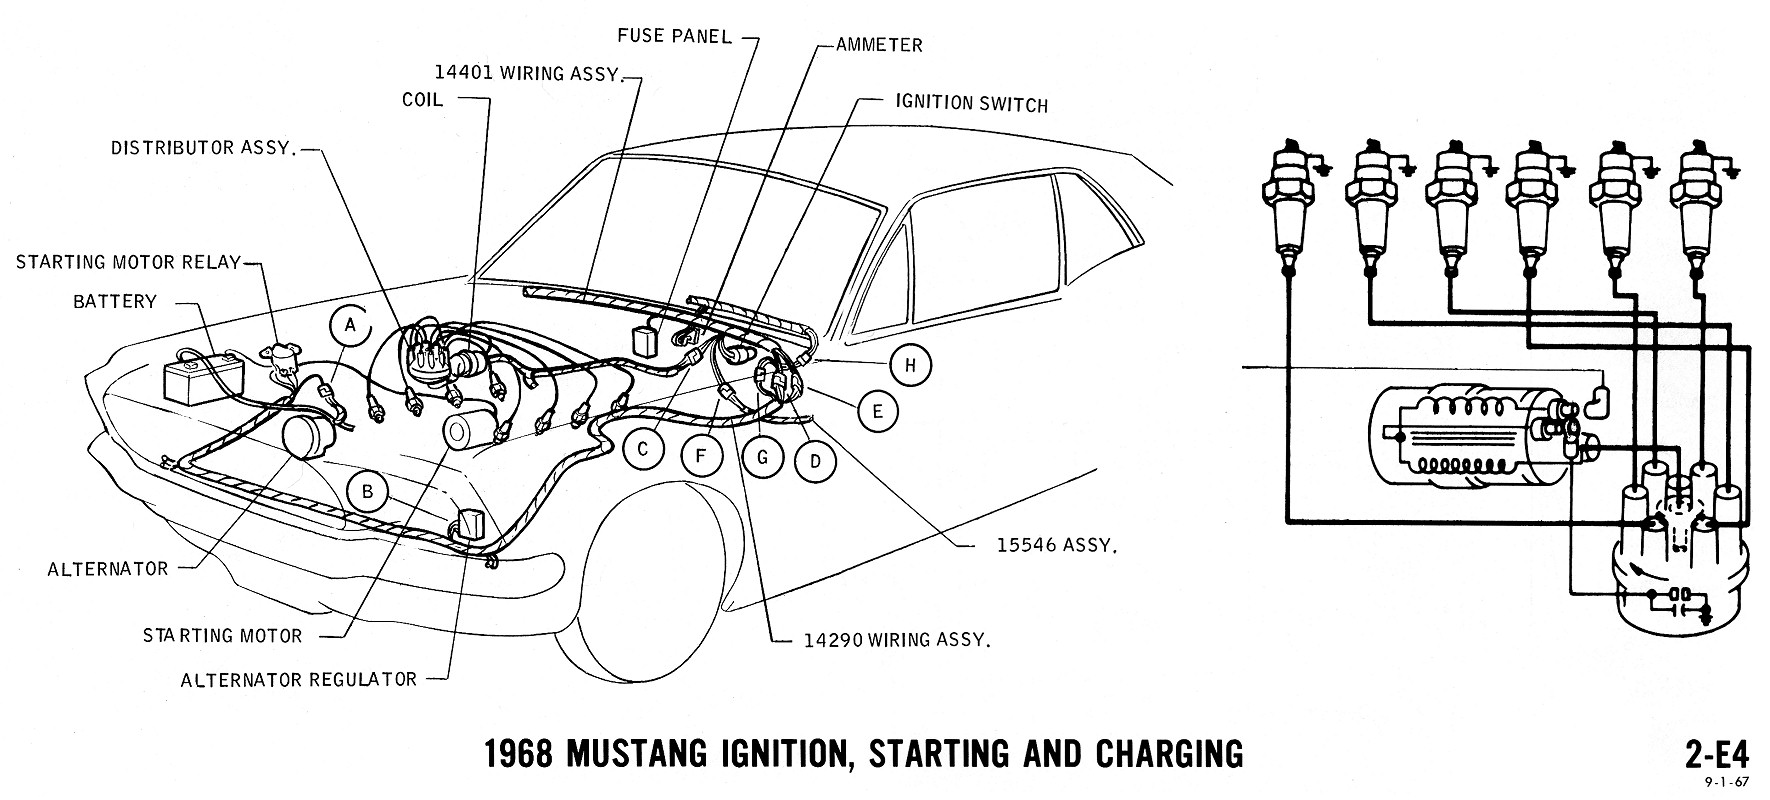 1968 mustang wiring diagram ignition starting charging 2 1968 mustang wiring diagrams and vacuum schematics average joe 1969 mustang wiring harness at reclaimingppi.co